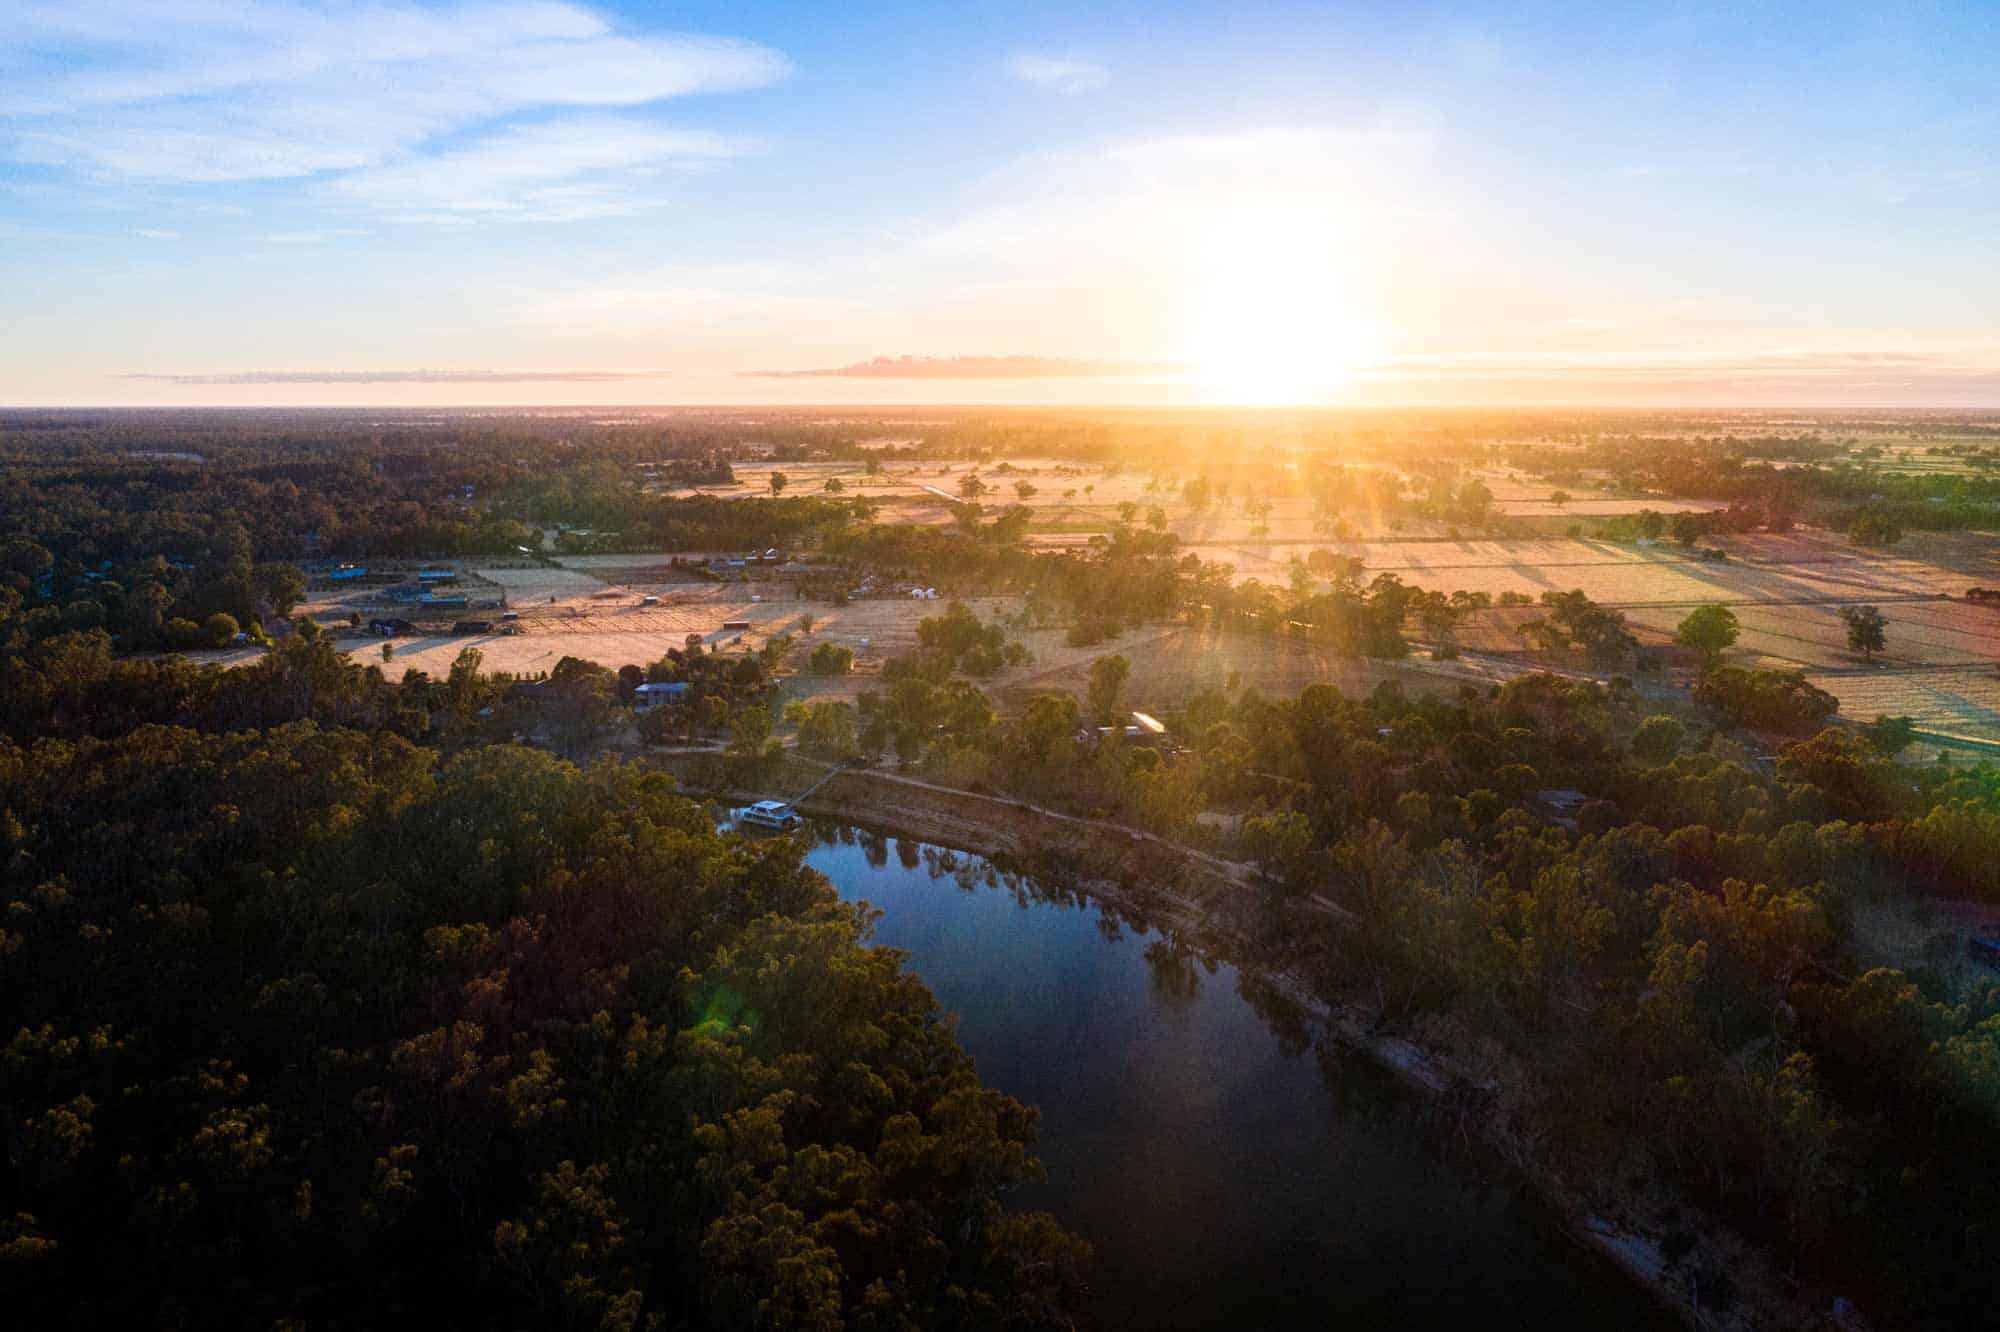 Reasons To Visit The Murray Region